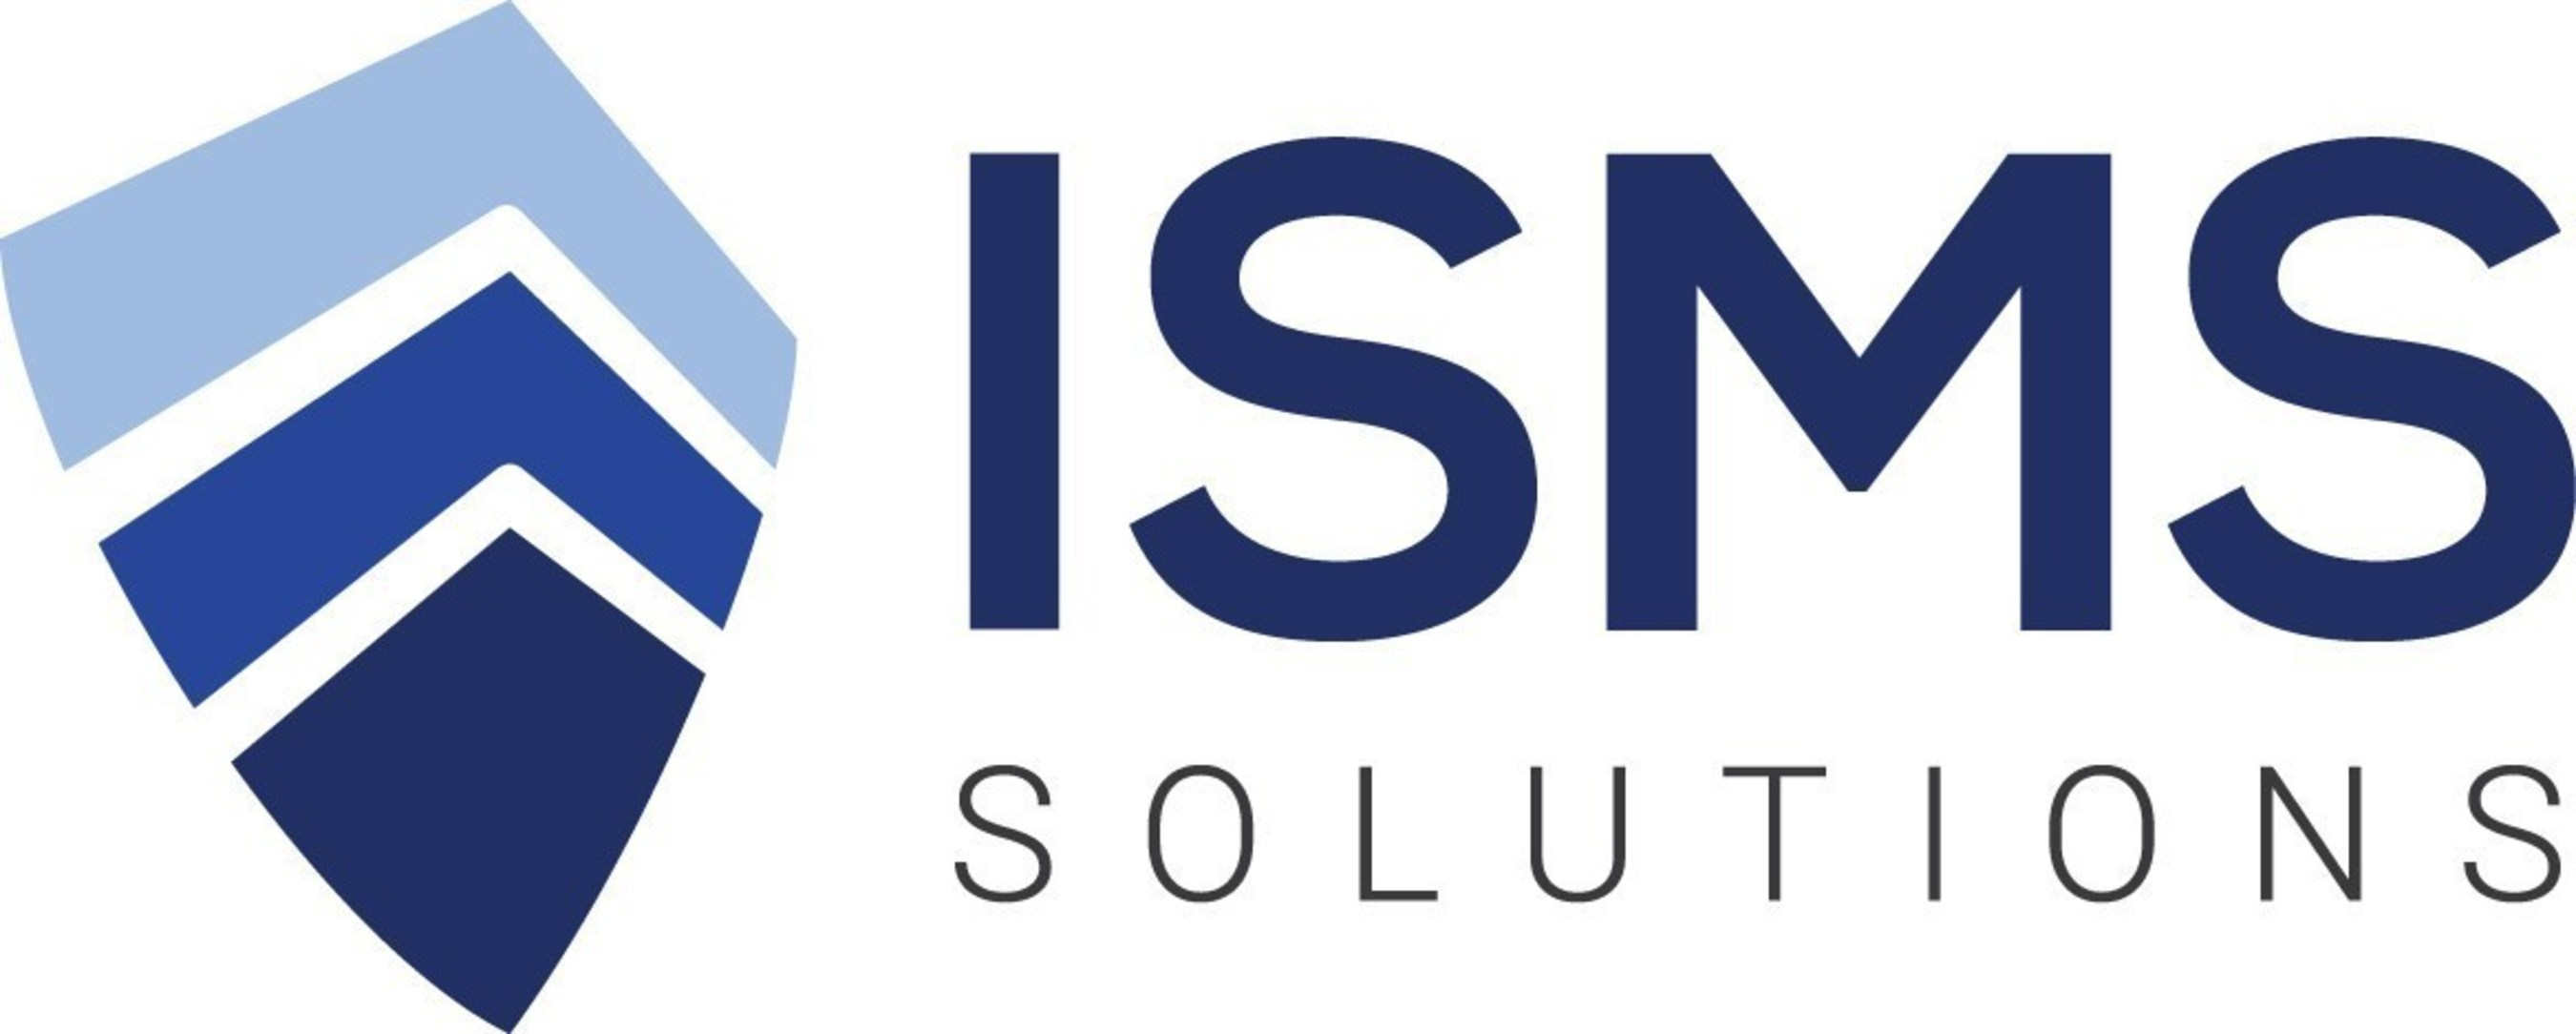 NSF International and ISMS Solutions Partner to Offer Tools for Transitioning to ISO 9001:2015